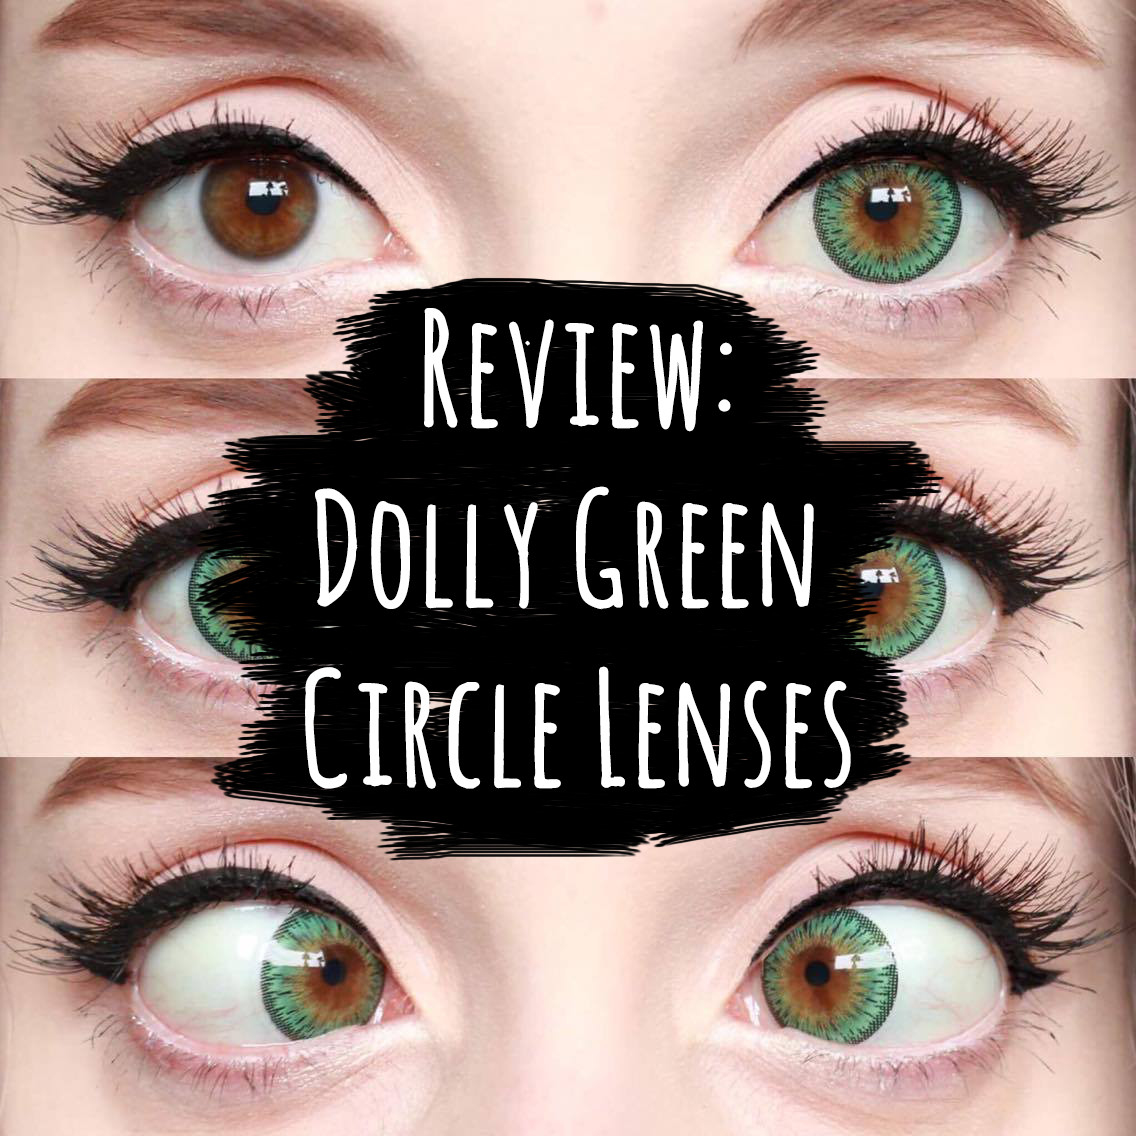 Review: Dolly Green Circle Lenses